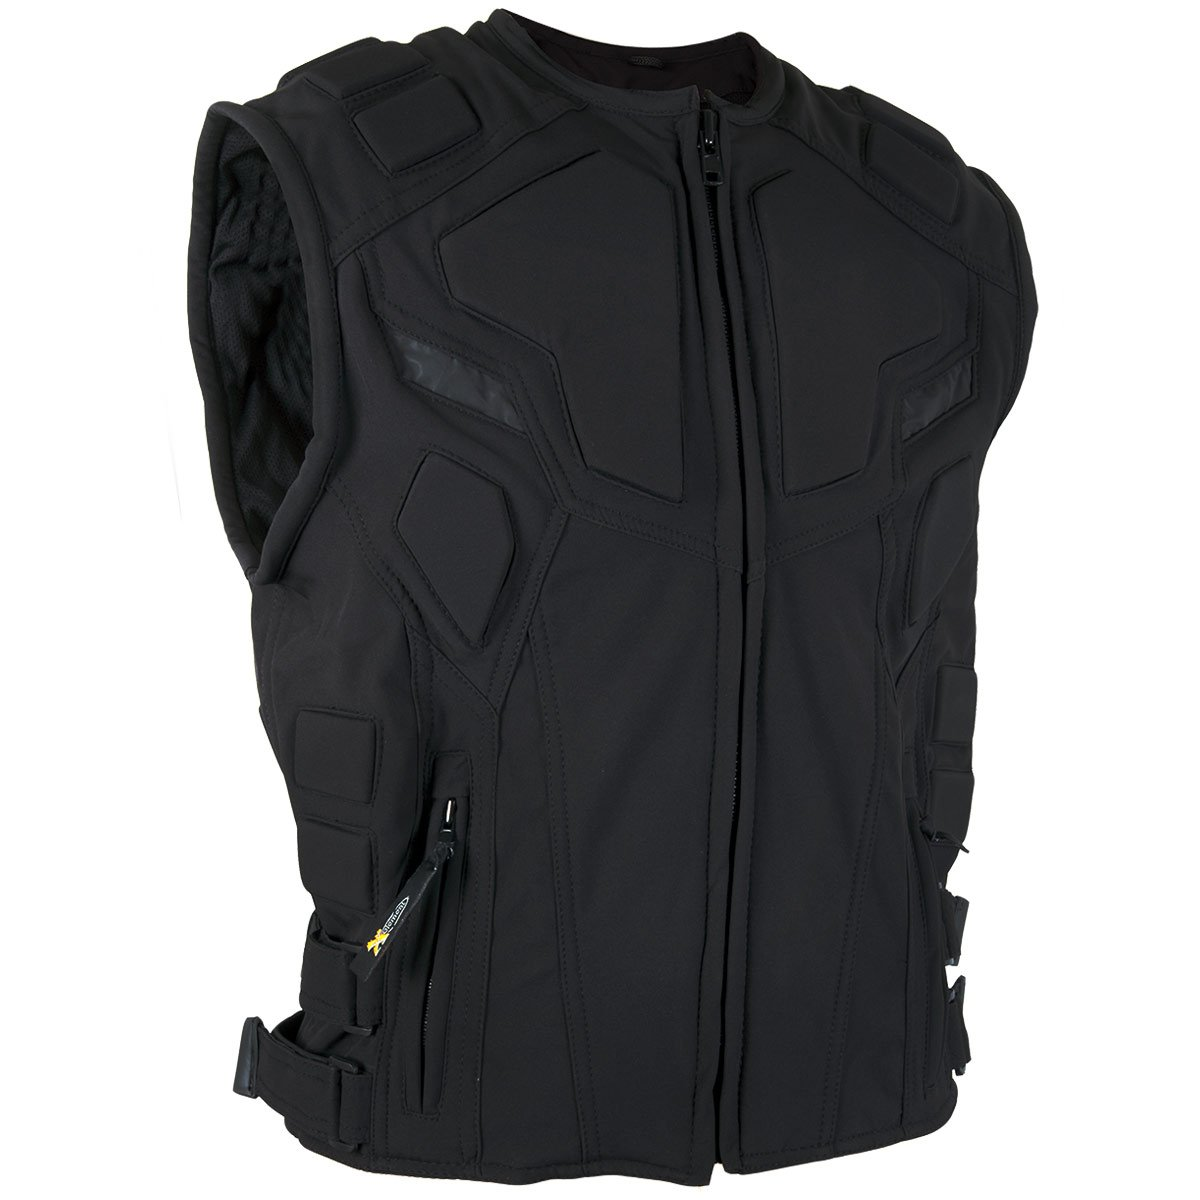 Xelement XS-3911 Mens Black Reflector Padded Soft Shell Fabric Vest with Back P - 3X-Large by Xelement